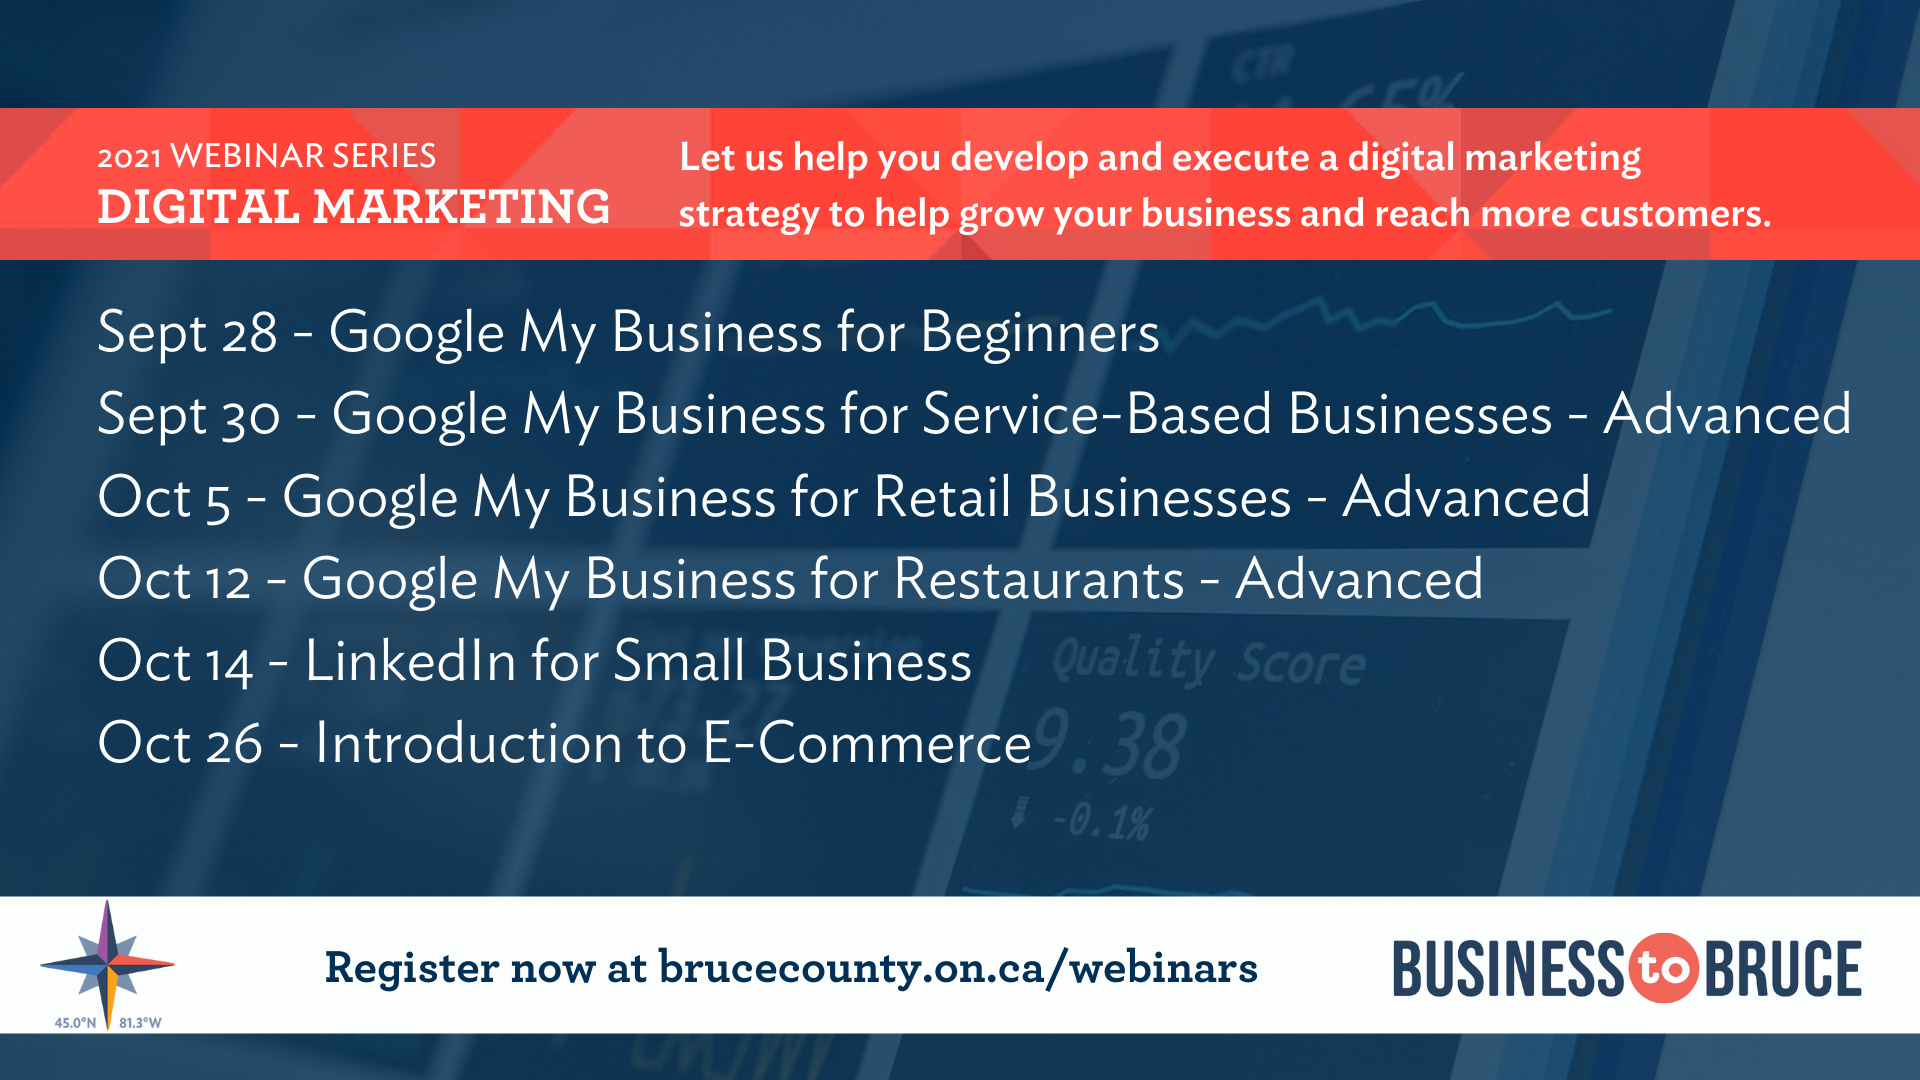 Business to Bruce Poster: Digital Marketing - Let us help you develop and execute a digital marketing strategy to help grow your business and reach more customers.